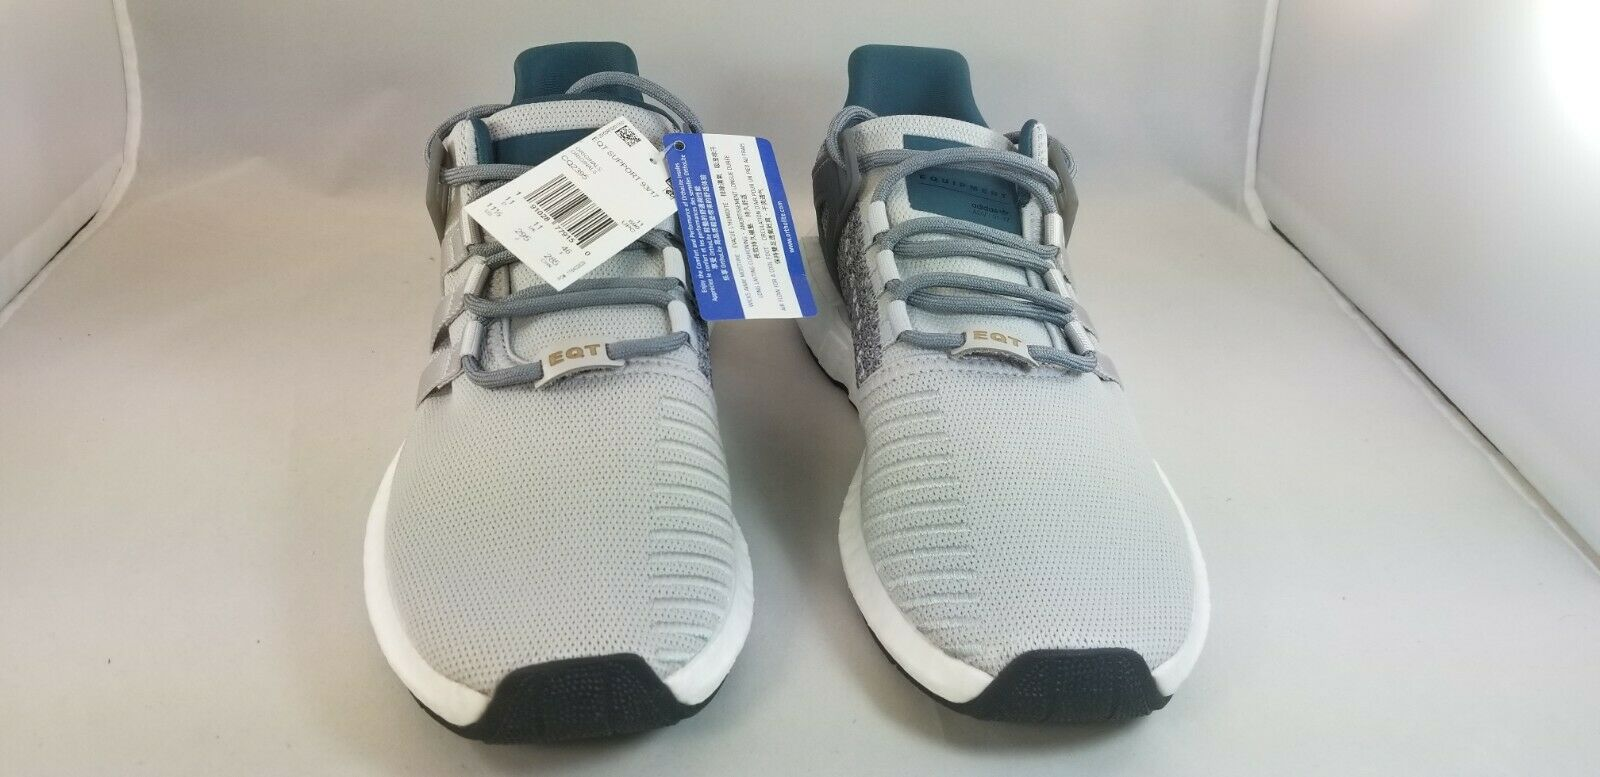 Adidas EQT Support 93 17 Brand New Athletic Sneakers Men Size US-11 1 2 No Box